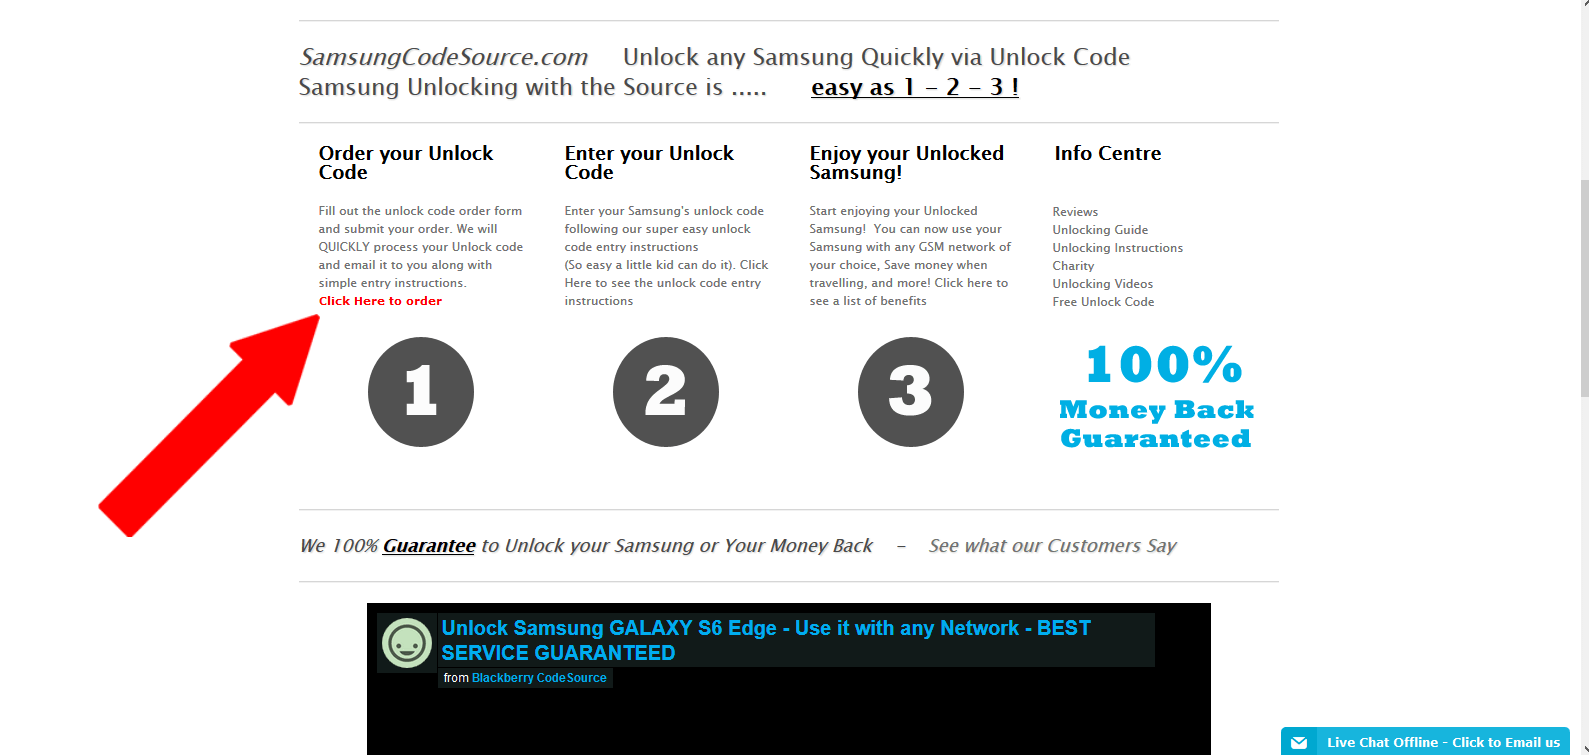 samsung-code-source-main-page